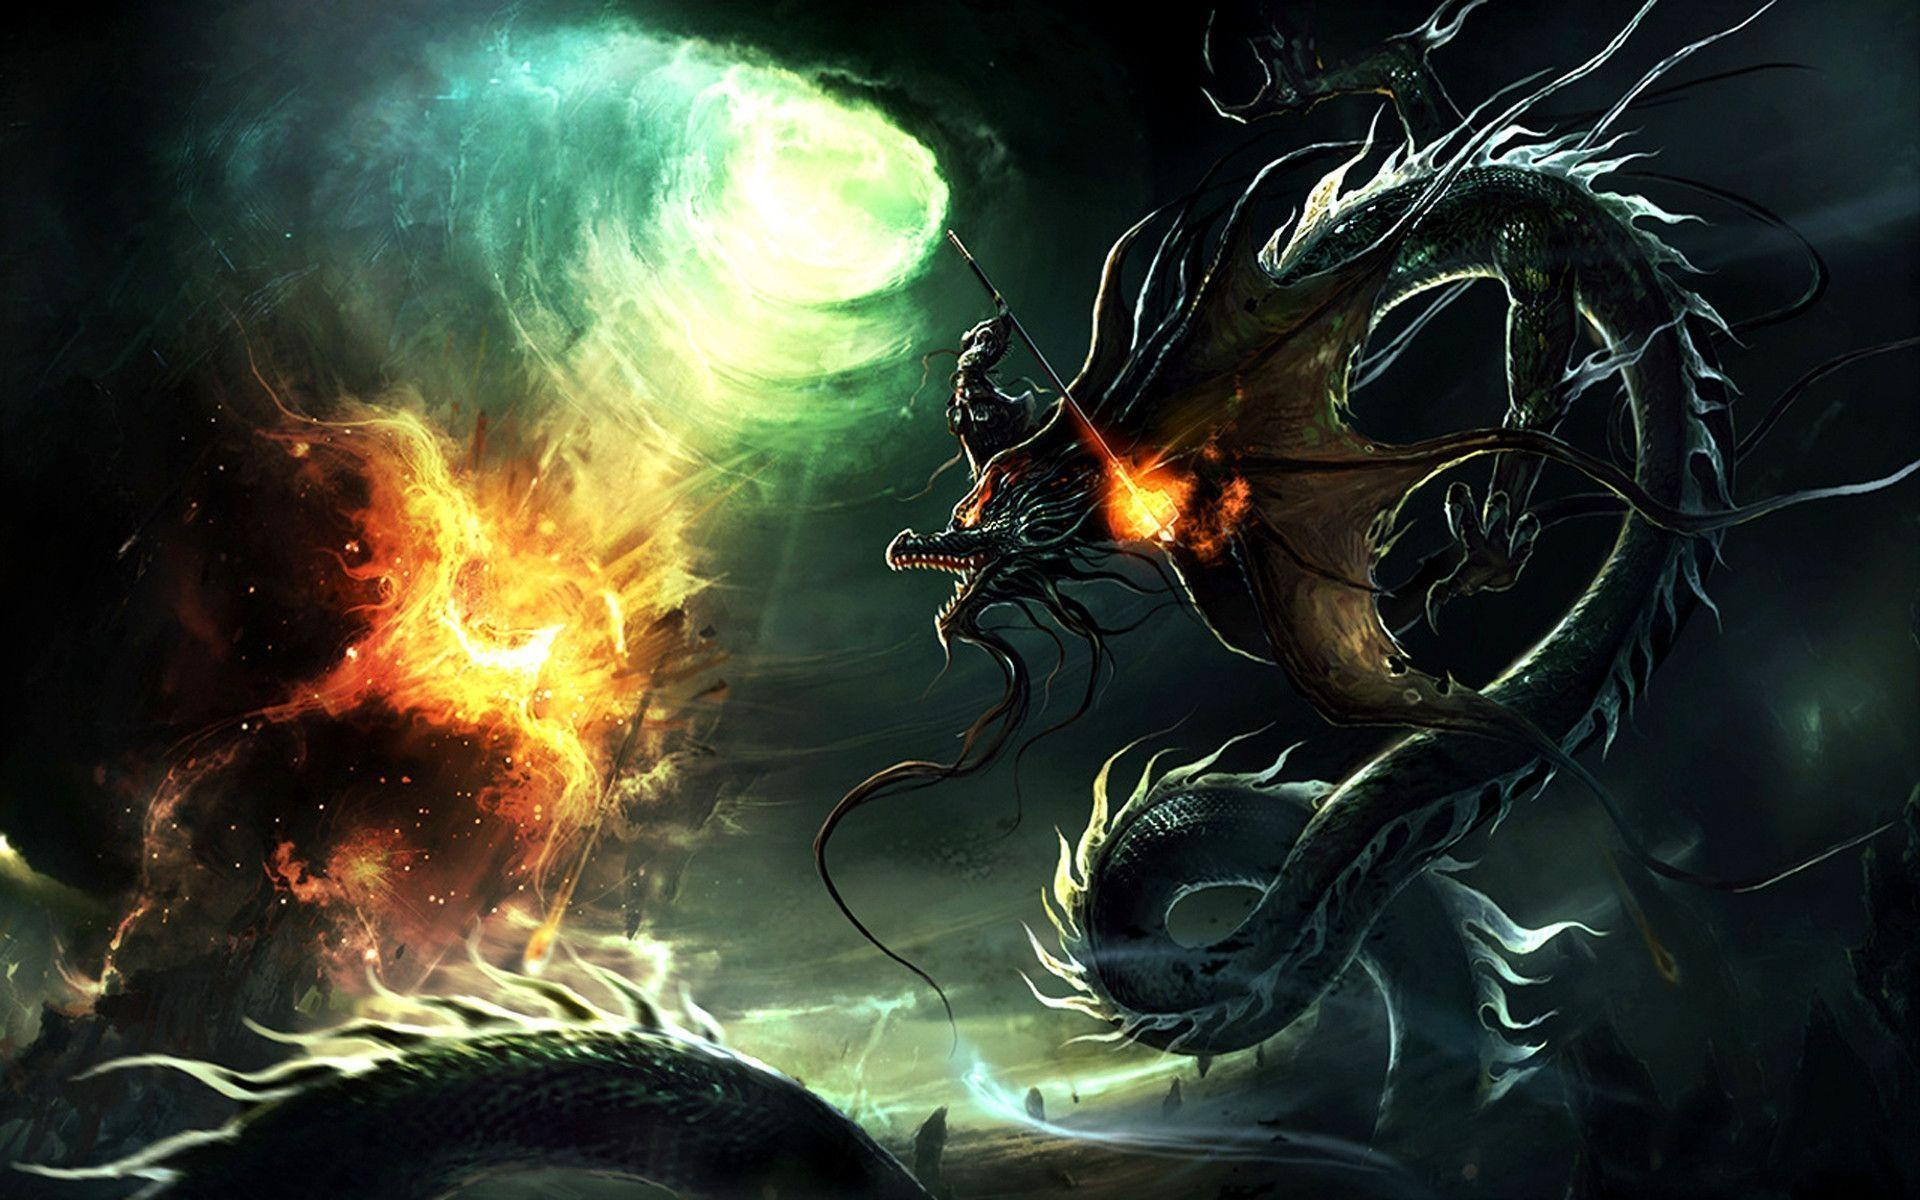 Image For > Epic Dragon Wallpapers Hd